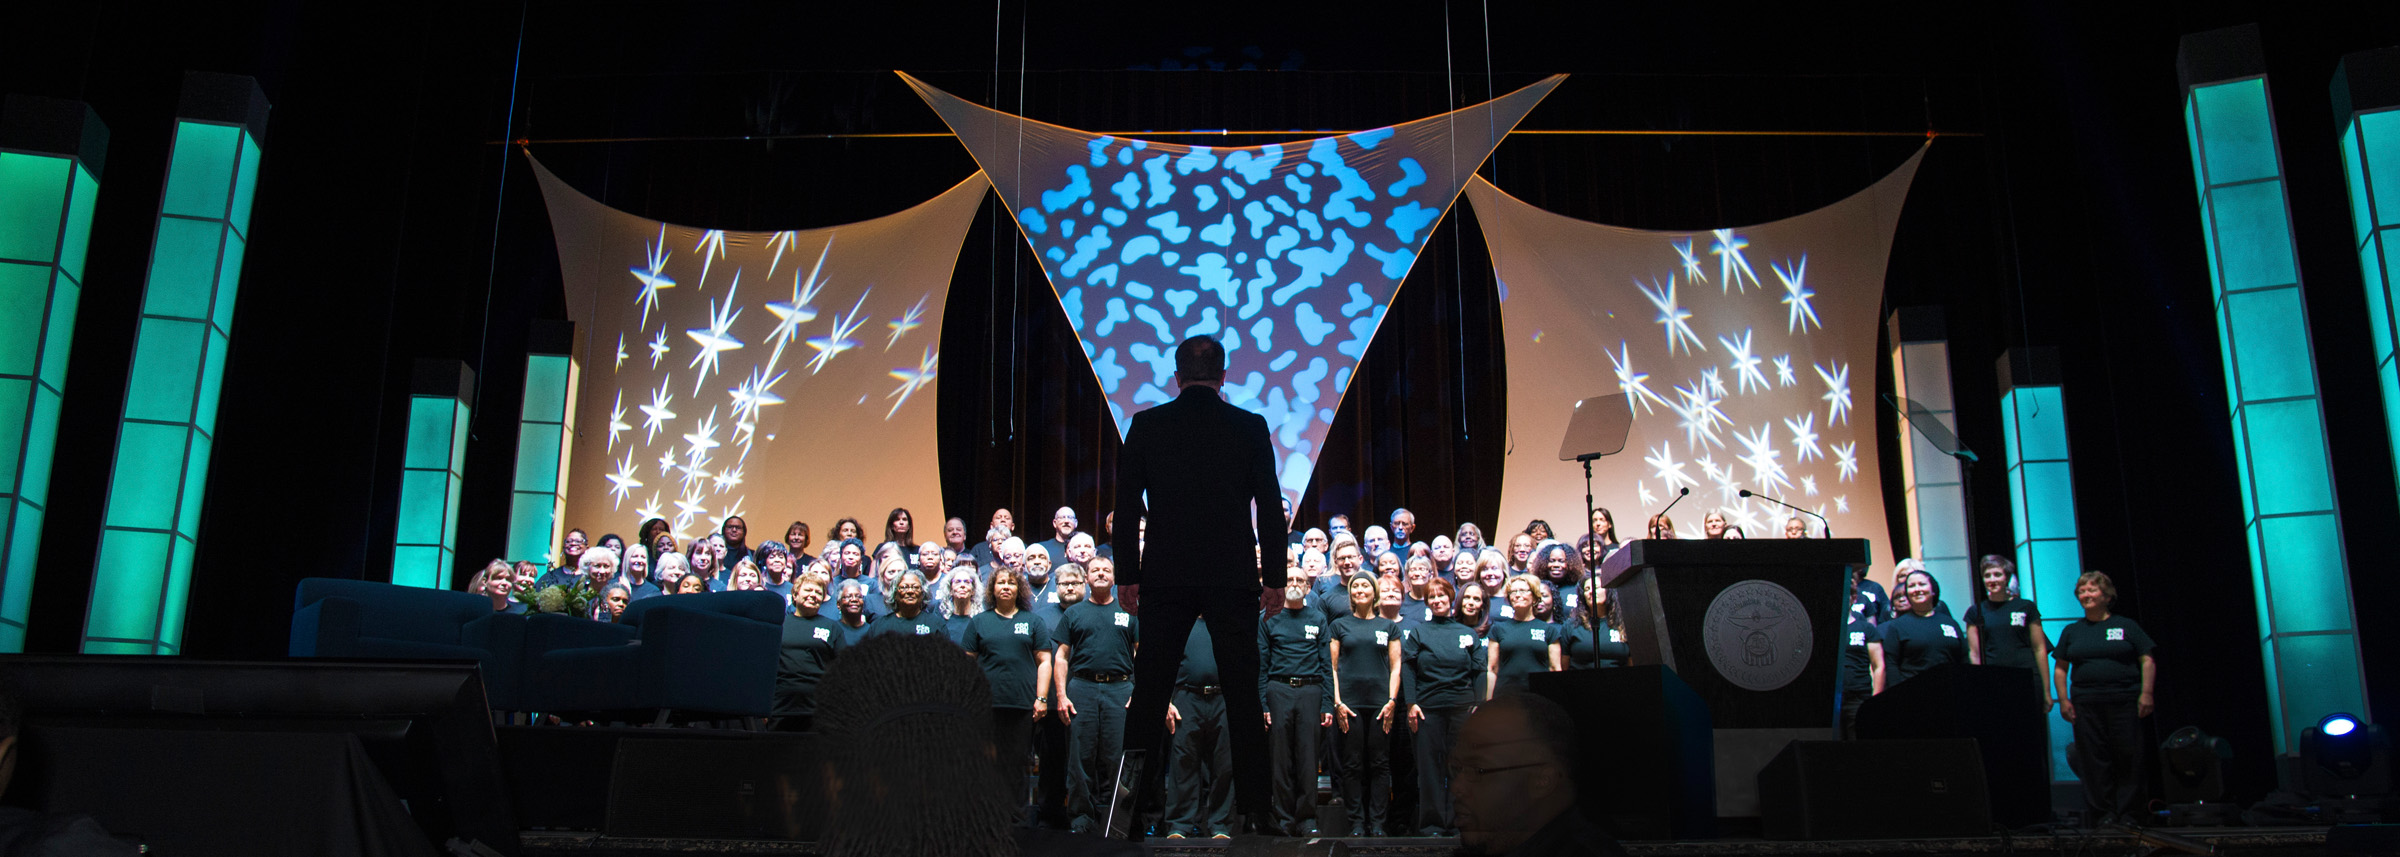 State of the City 2015 choir